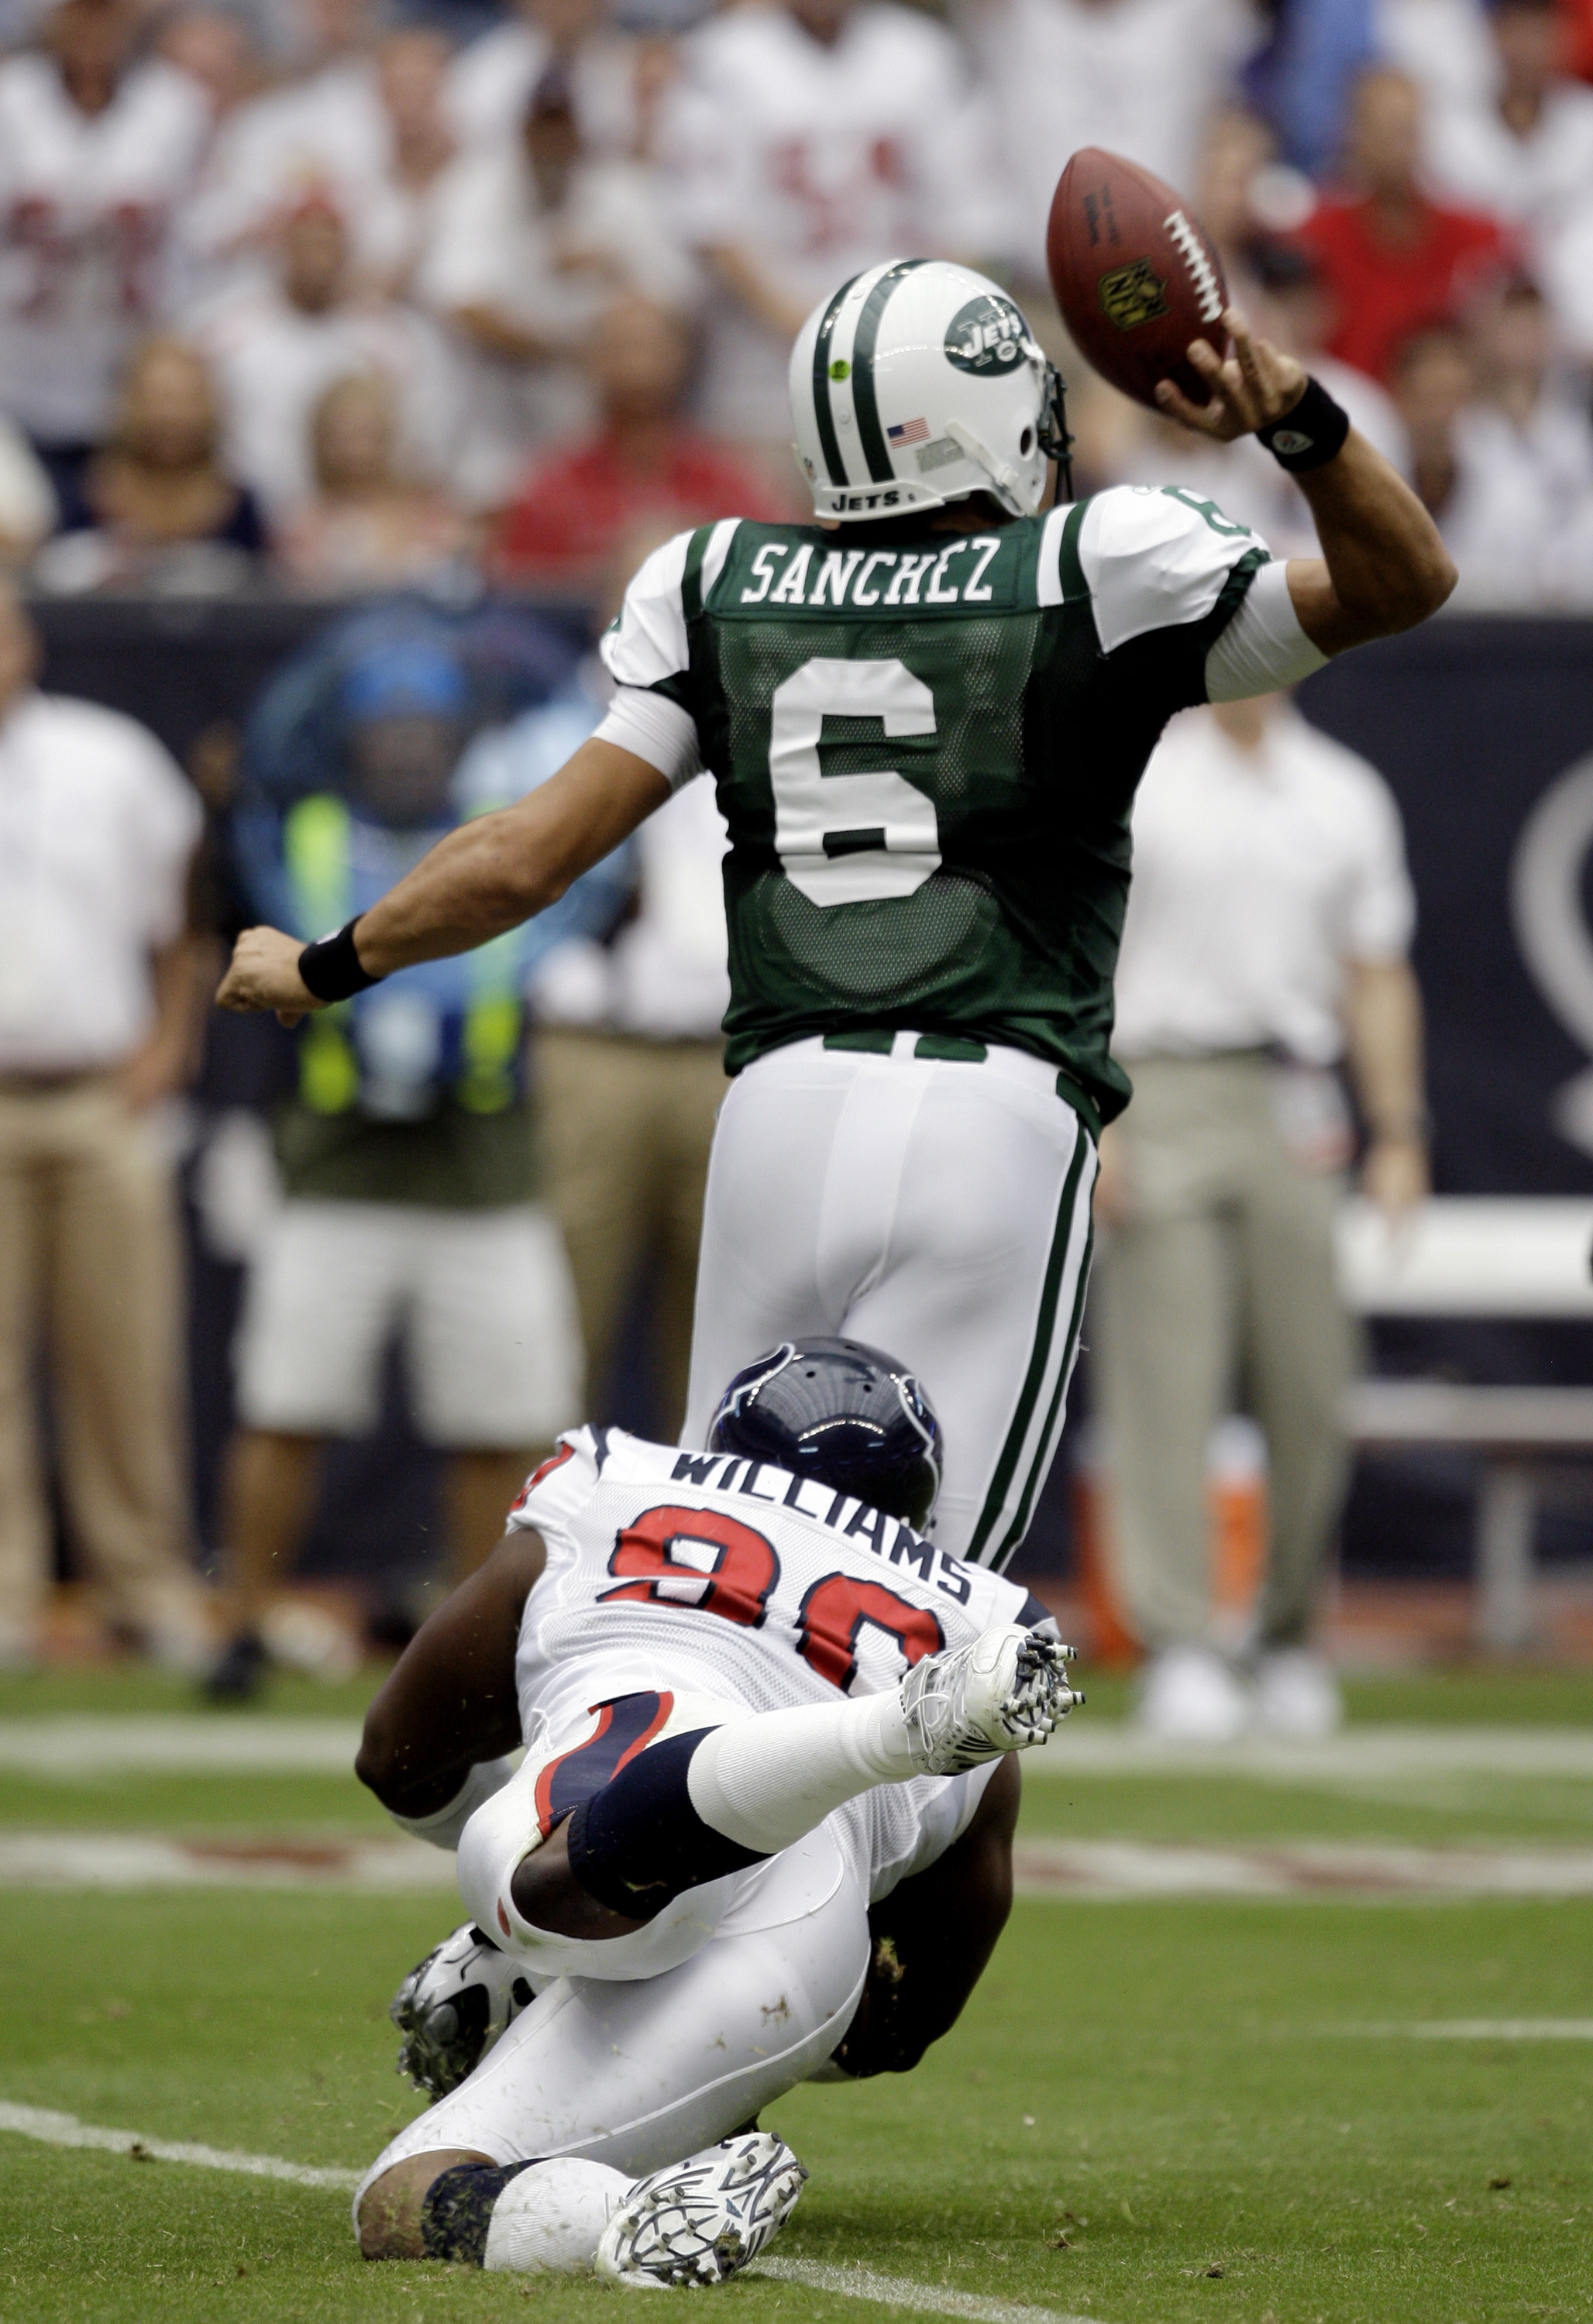 HOUSTON - SEPTEMBER 13: Quarterback Mark Sanchez #6 of the New York Jets is tackled from behind by defensive end Mario Williams #90 of the Houston Texans as he releases the ball at Reliant Stadium on September 13, 2009 in Houston, Texas.  (Photo by Bob Le